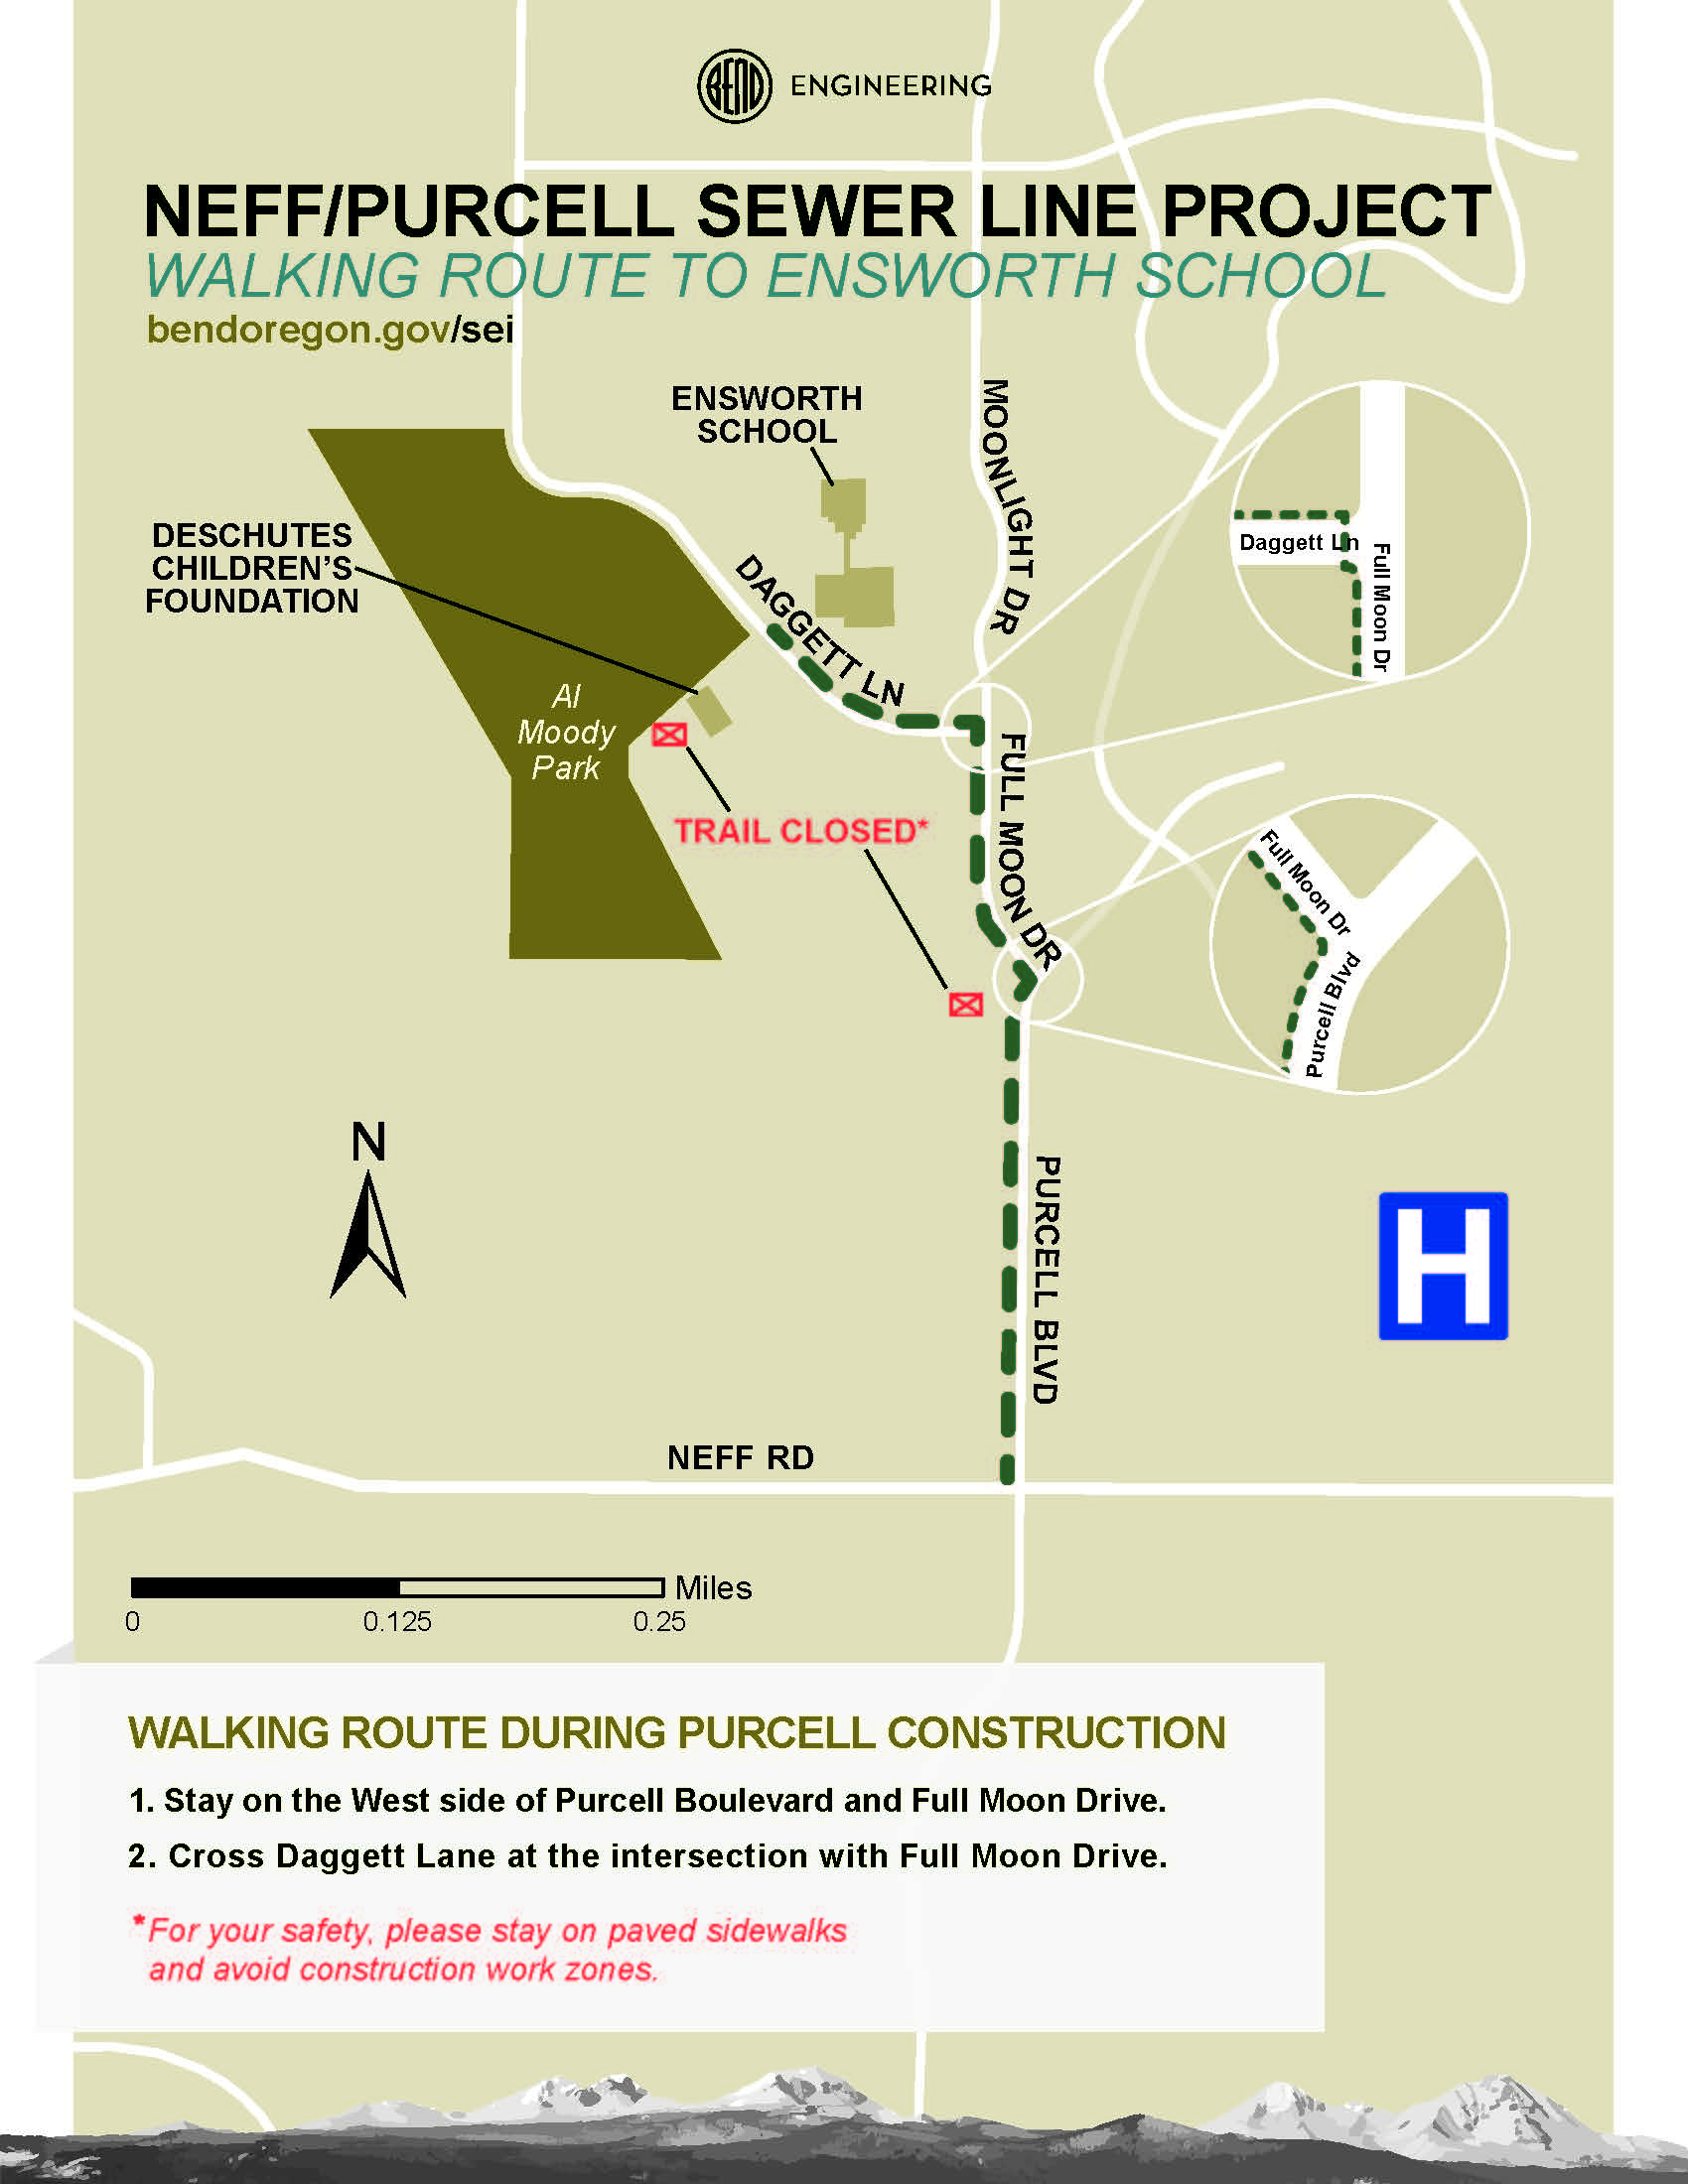 Walking Route to Ensworth School. Stay on the west side of Purcell Blvd and Full Moon Dr. Cross Daggett Ln at the intersection with Full Moon Dr. For your safety, please stay on paved sidewalks and avoid construction work zones.